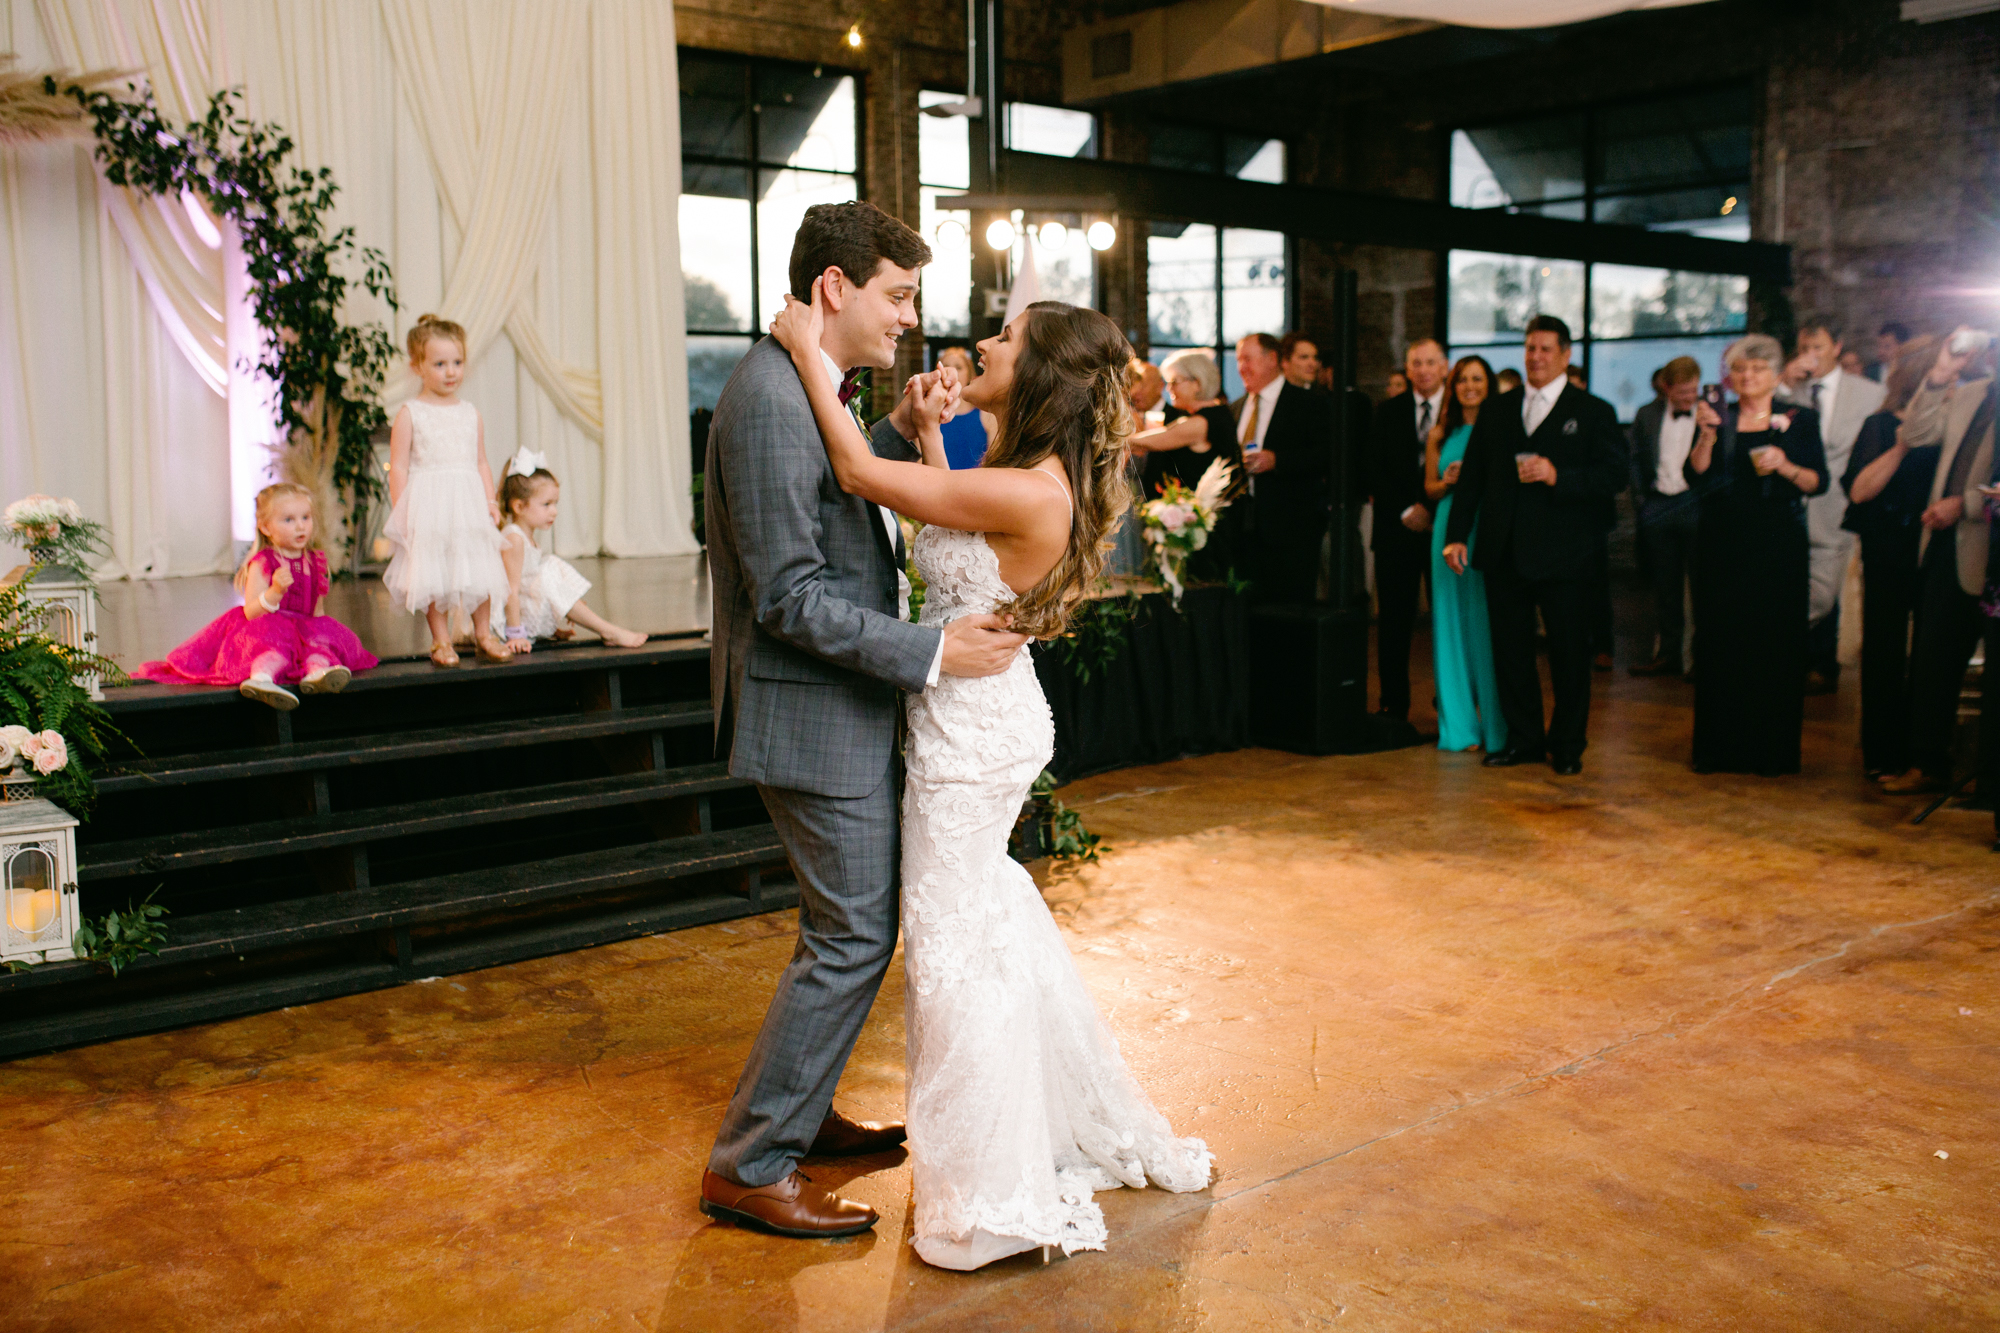 Gulfport_Wedding_Photographer-83.jpg